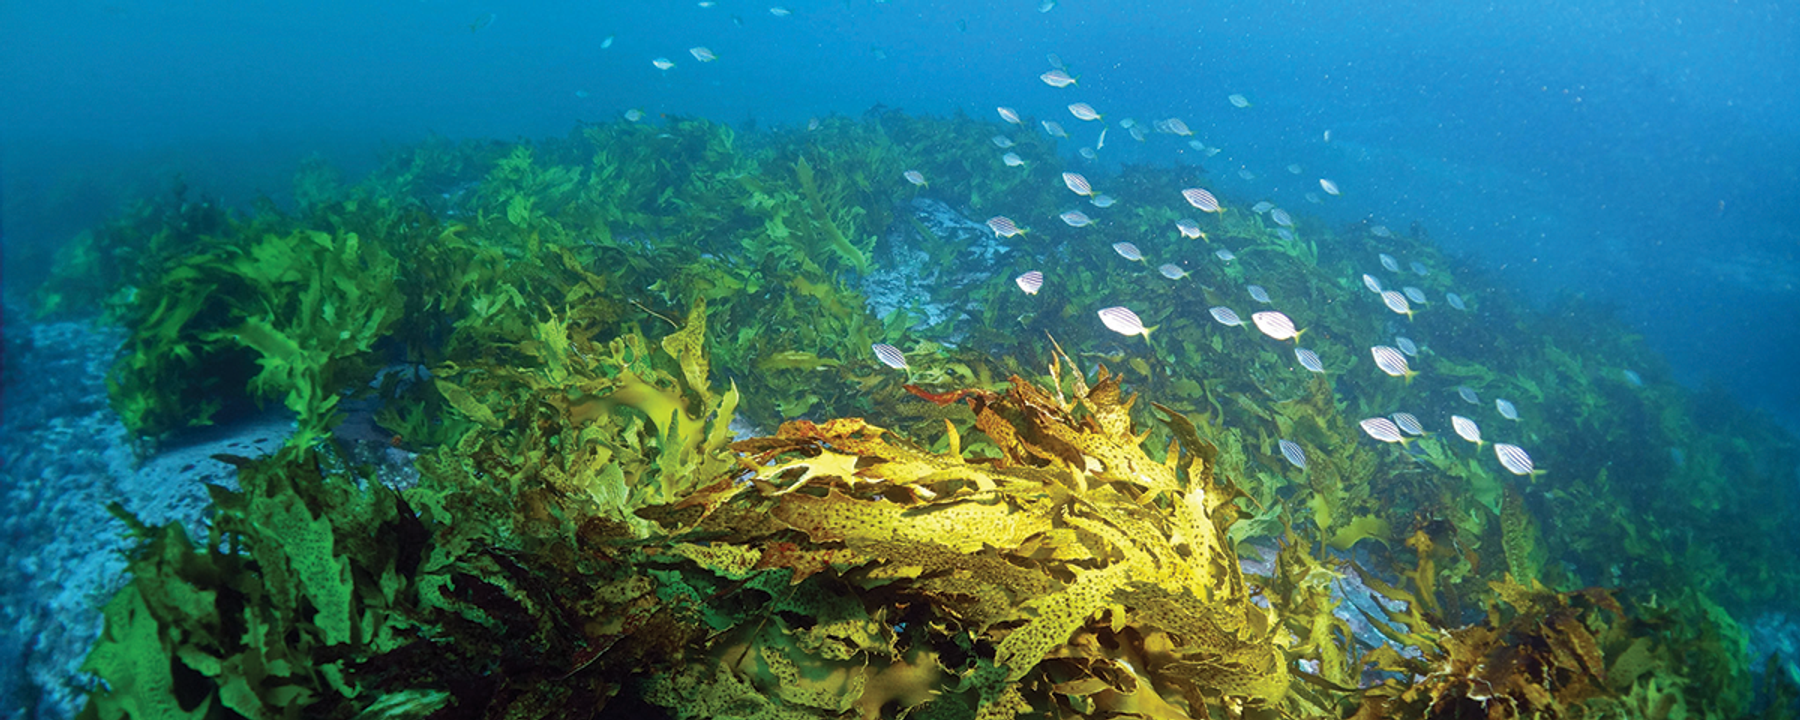 In a Warming Climate, Seaweed's Microbiome May Mediate Disease